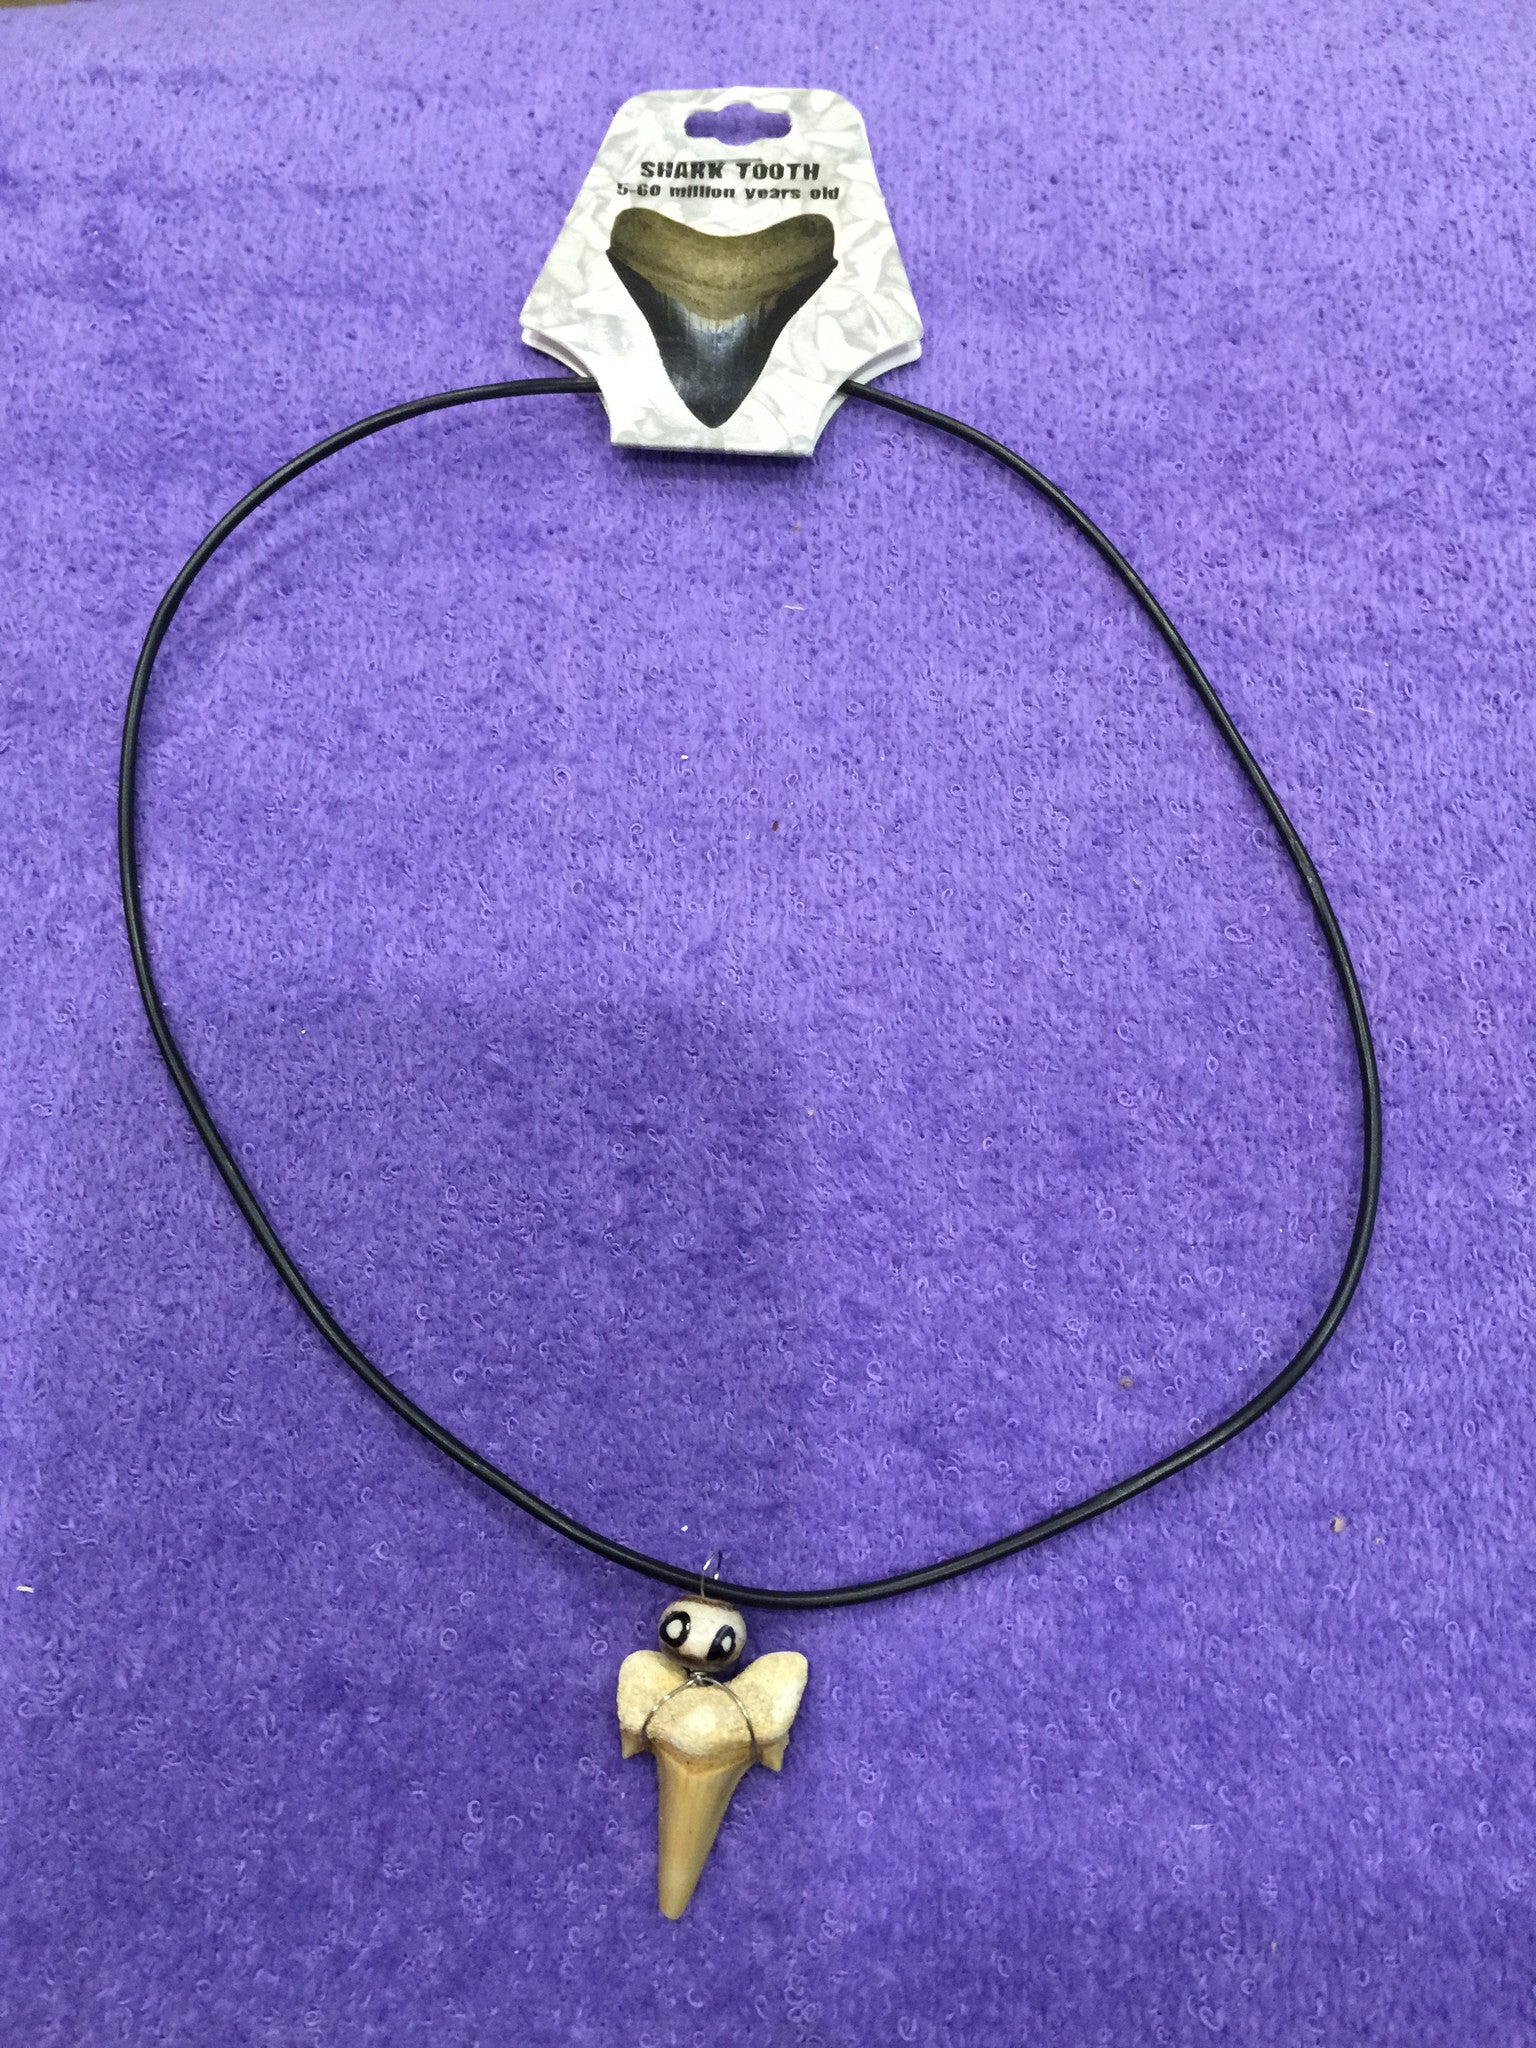 Shark Tooth Necklace w/animal print bead